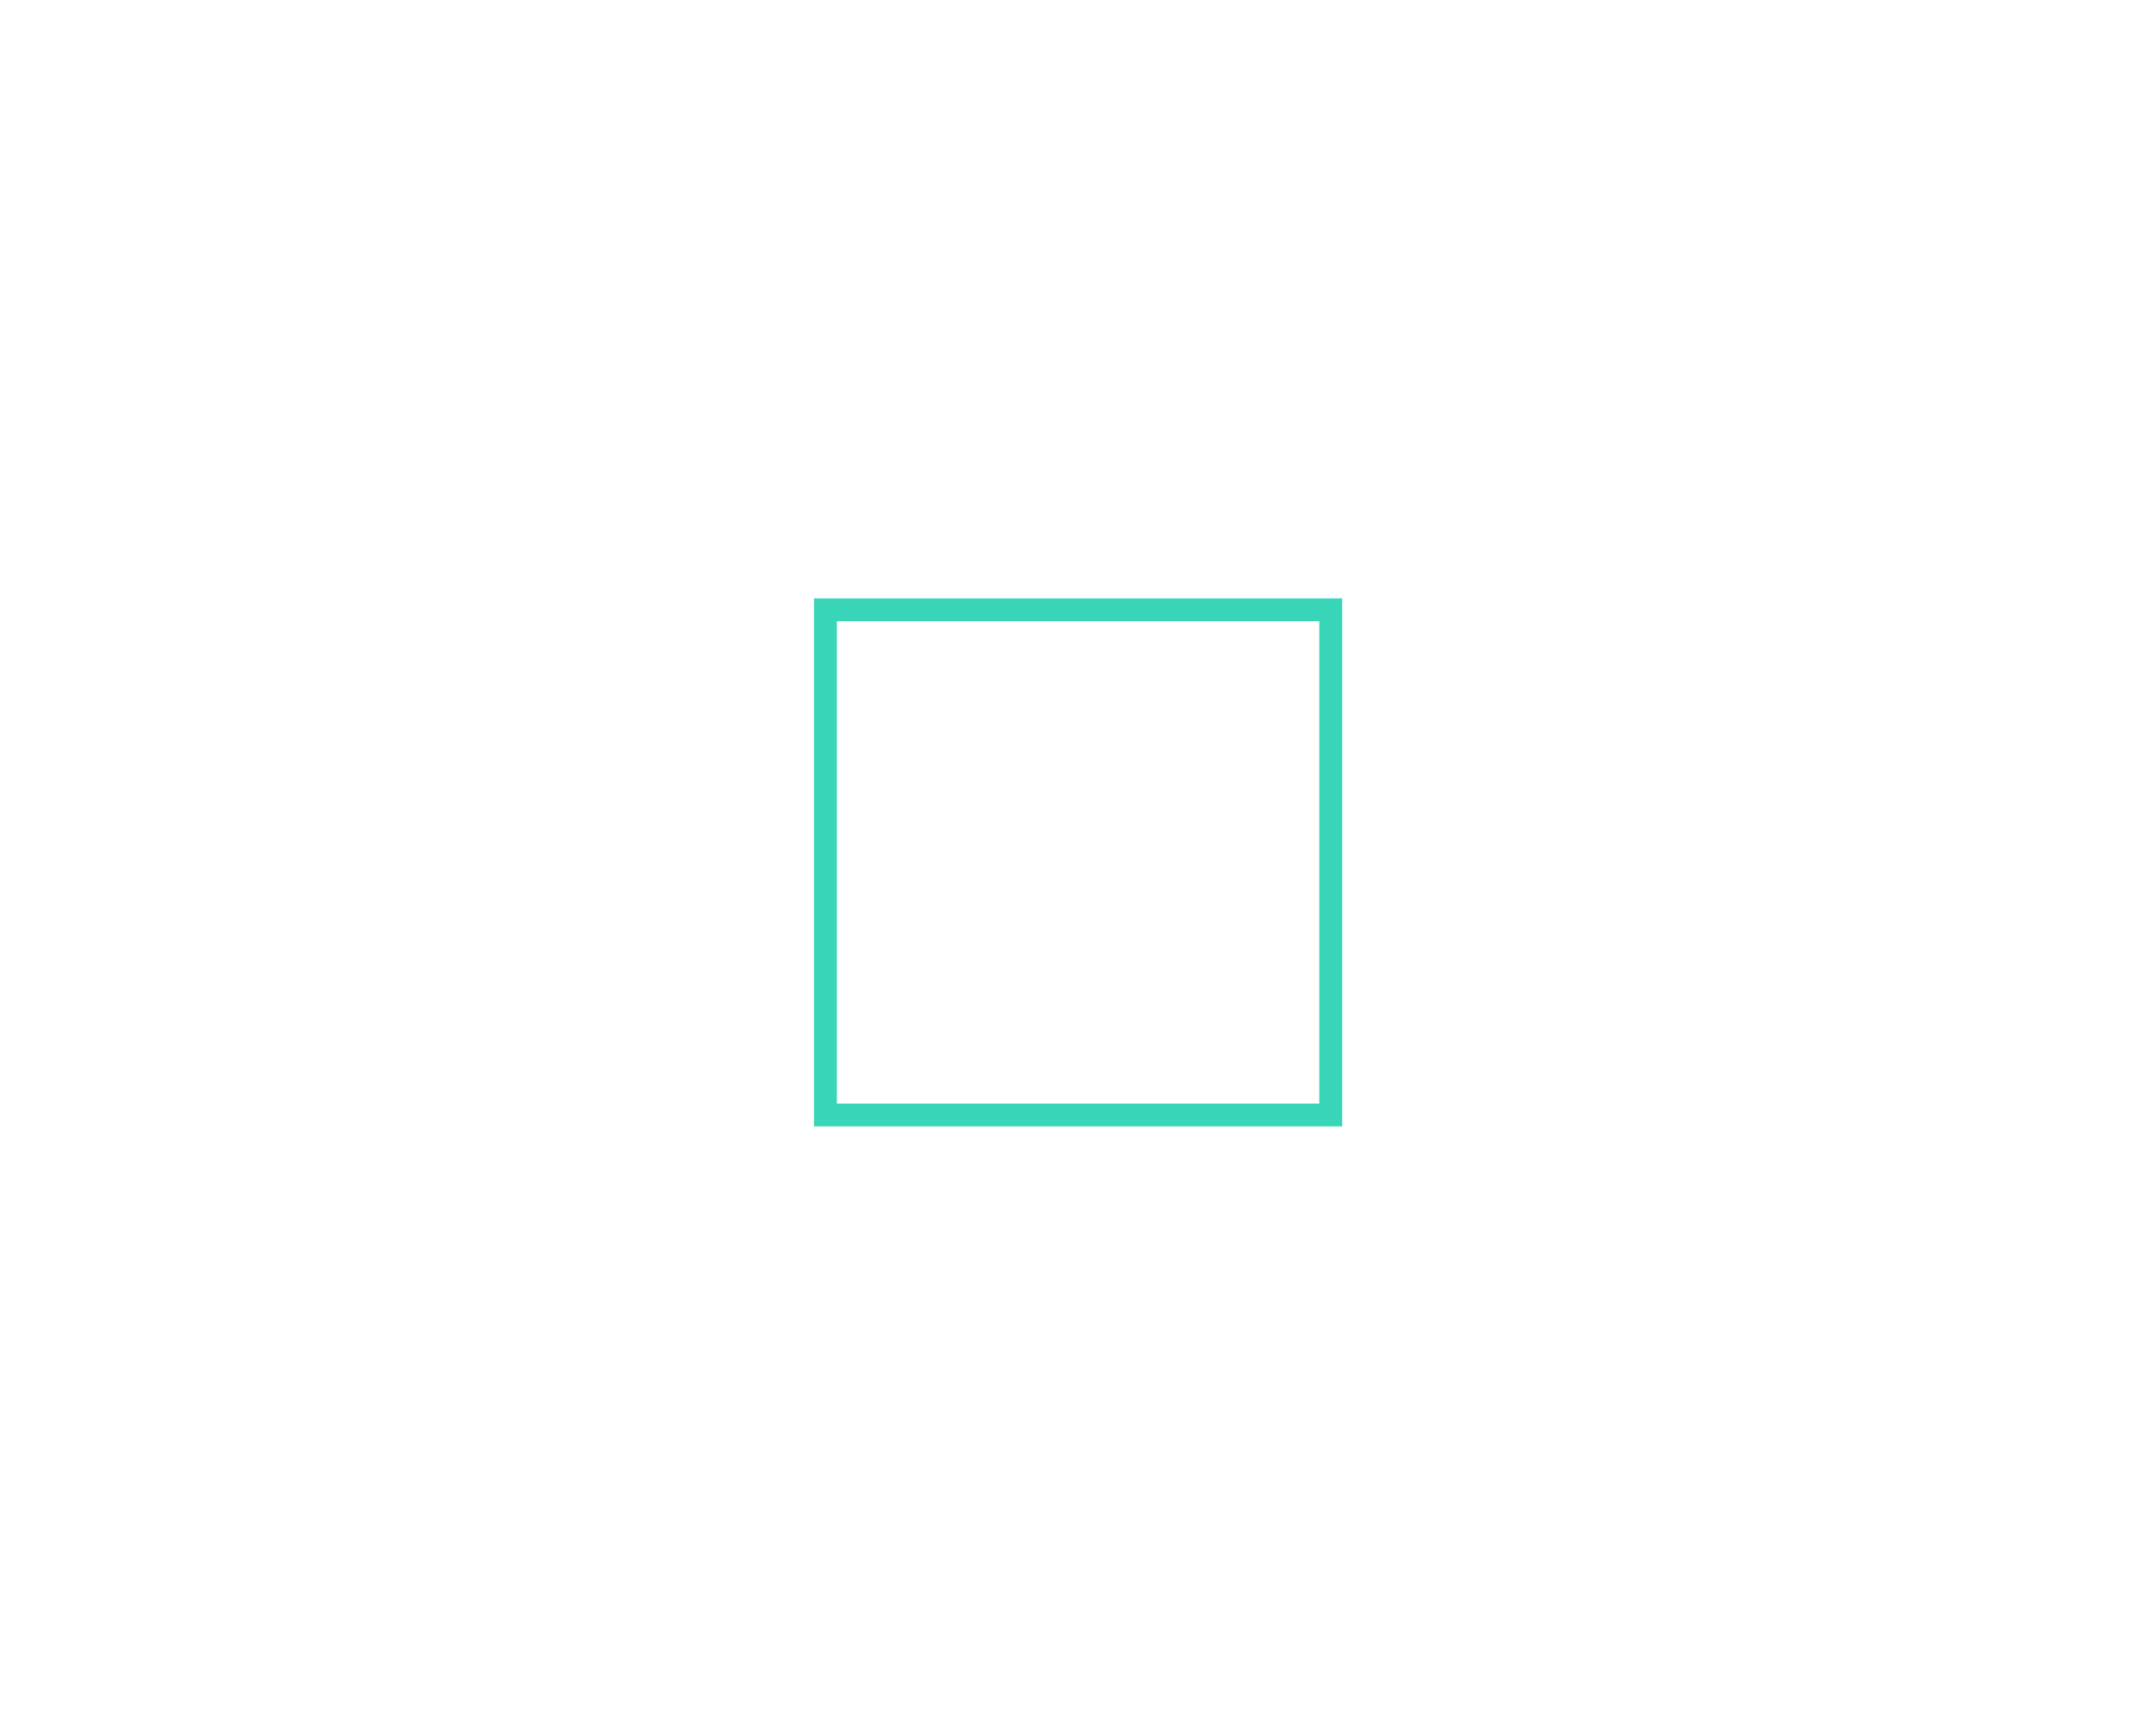 The third square represents the safe haven we choose to create. It is a reminder that these walls are laced with love and acceptance, and that we genuinely care about everyone that enters the building and strive to prove how true that is.